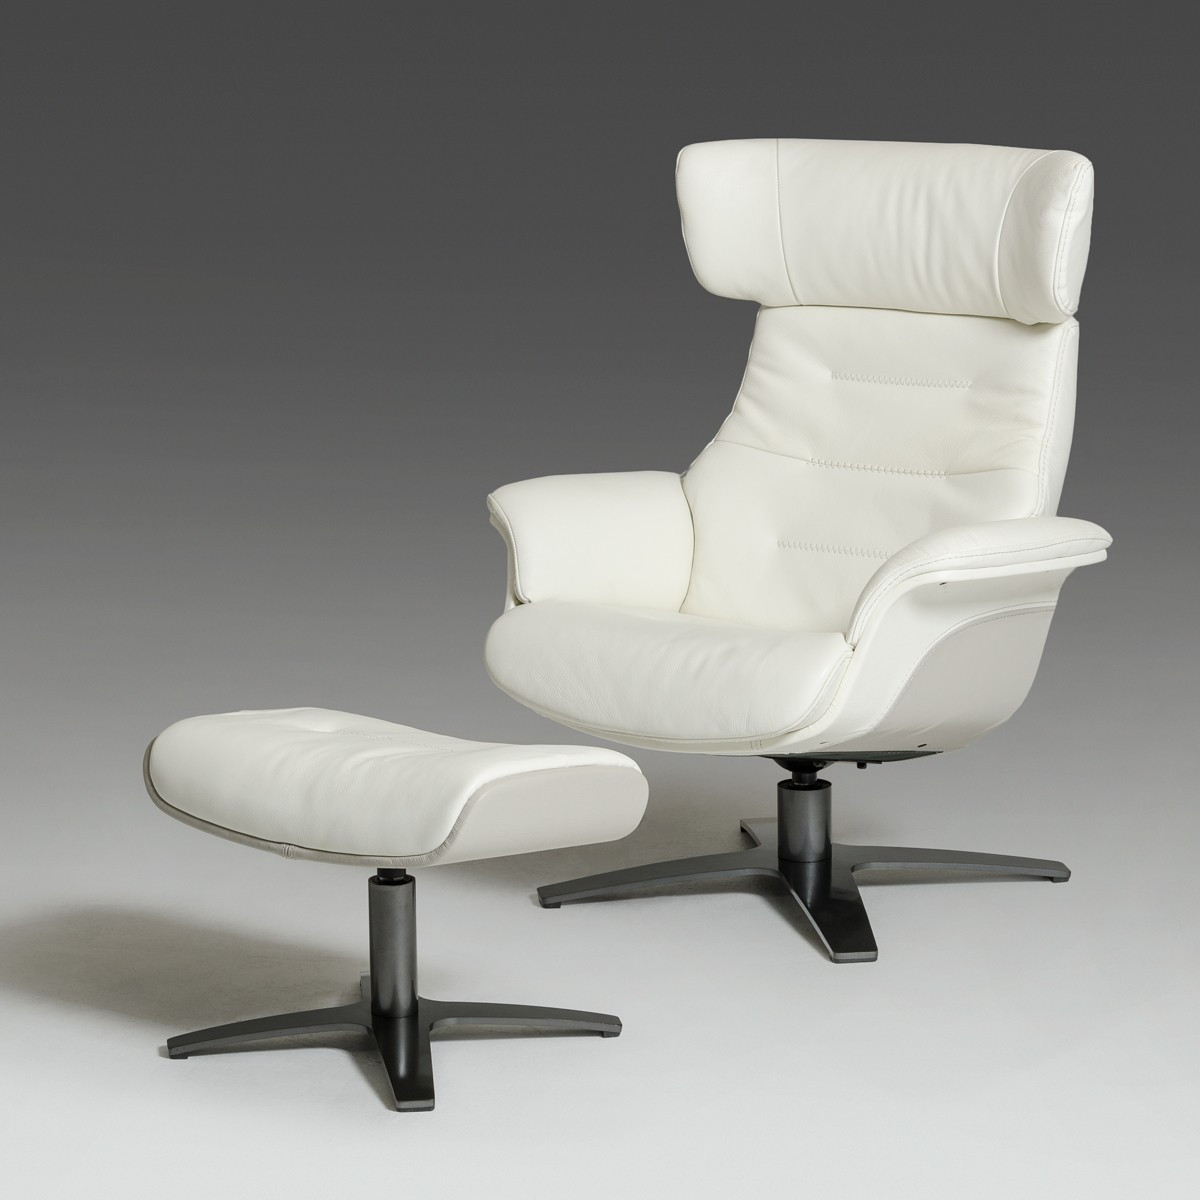 Best ideas about Modern Recliner Chair . Save or Pin Modern White and Grey Genuine Leather Reclining Chair and Now.